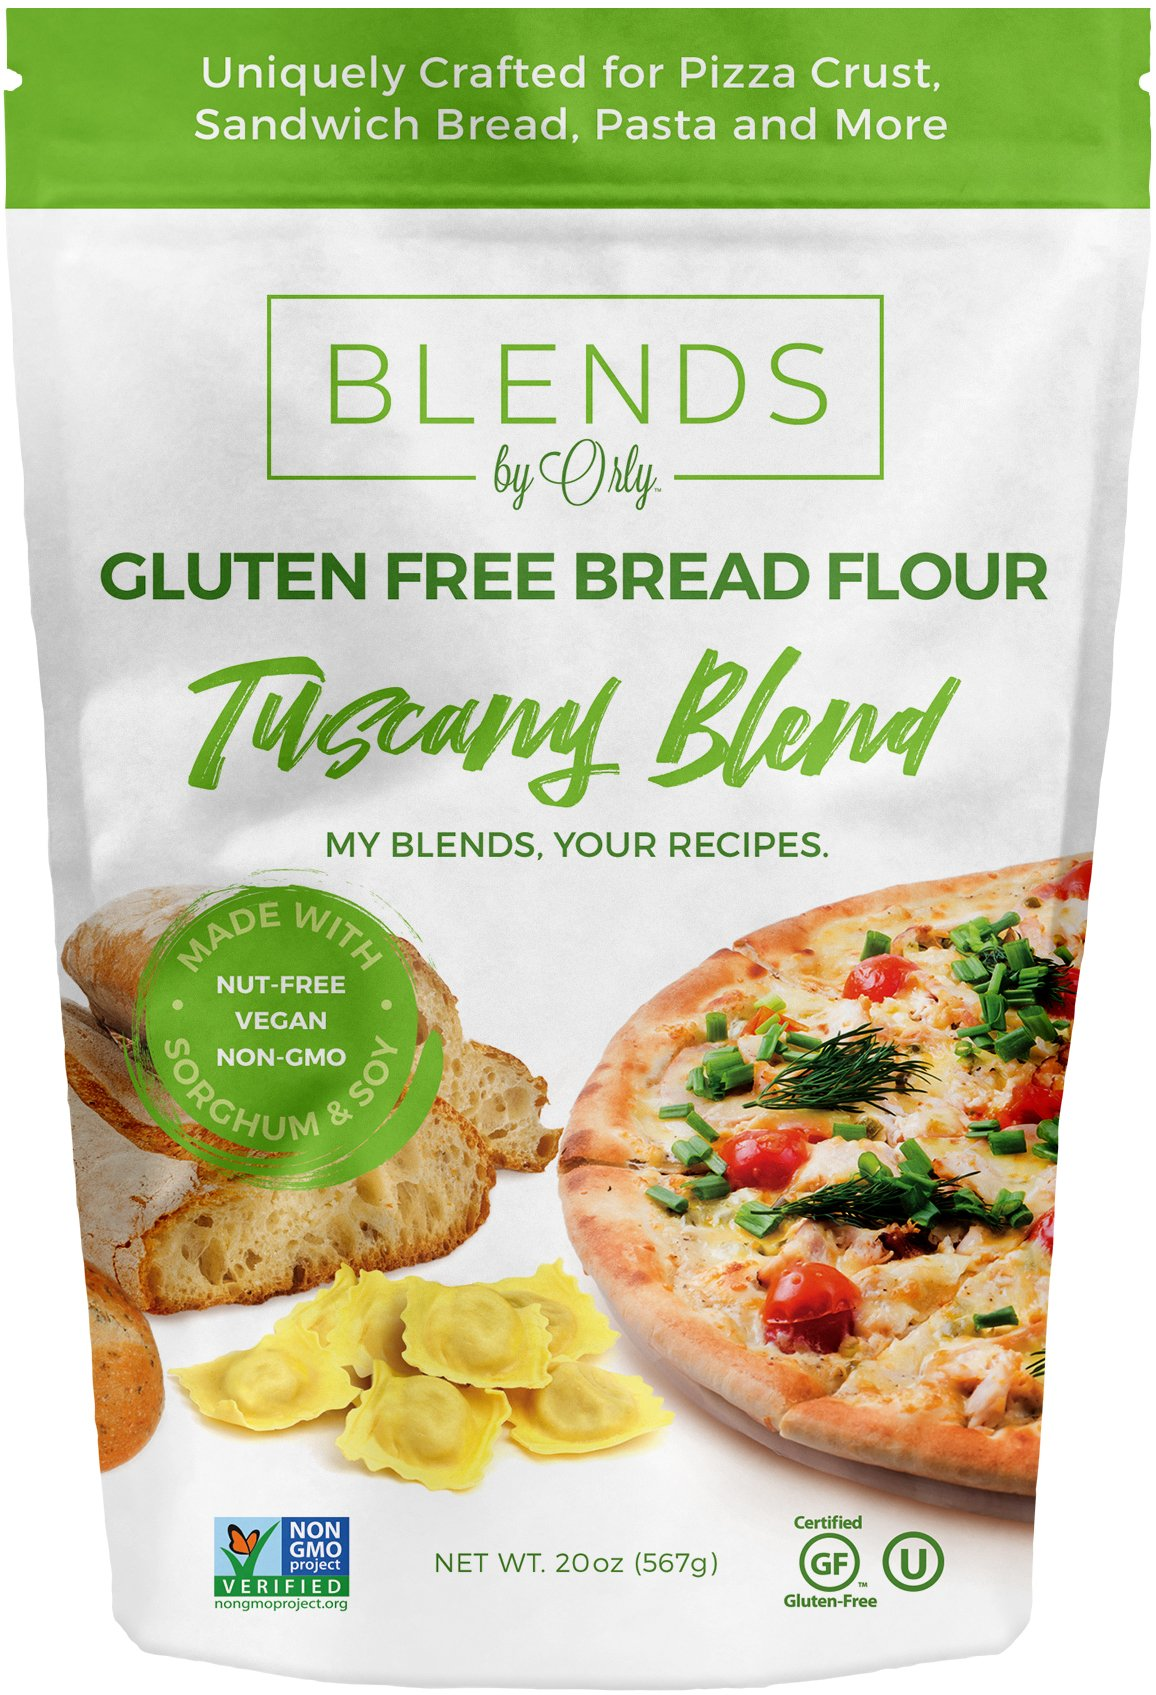 Blends by Orly Premium Gluten Free Bread Flour - Baking Flour for Gluten Free Bread, Gluten Free Pizza Crust, Gluten Free Burger Buns, Gluten Free Pasta & Gluten Free Focaccia - Tuscany Blend 20 OZ by Blends By Orly